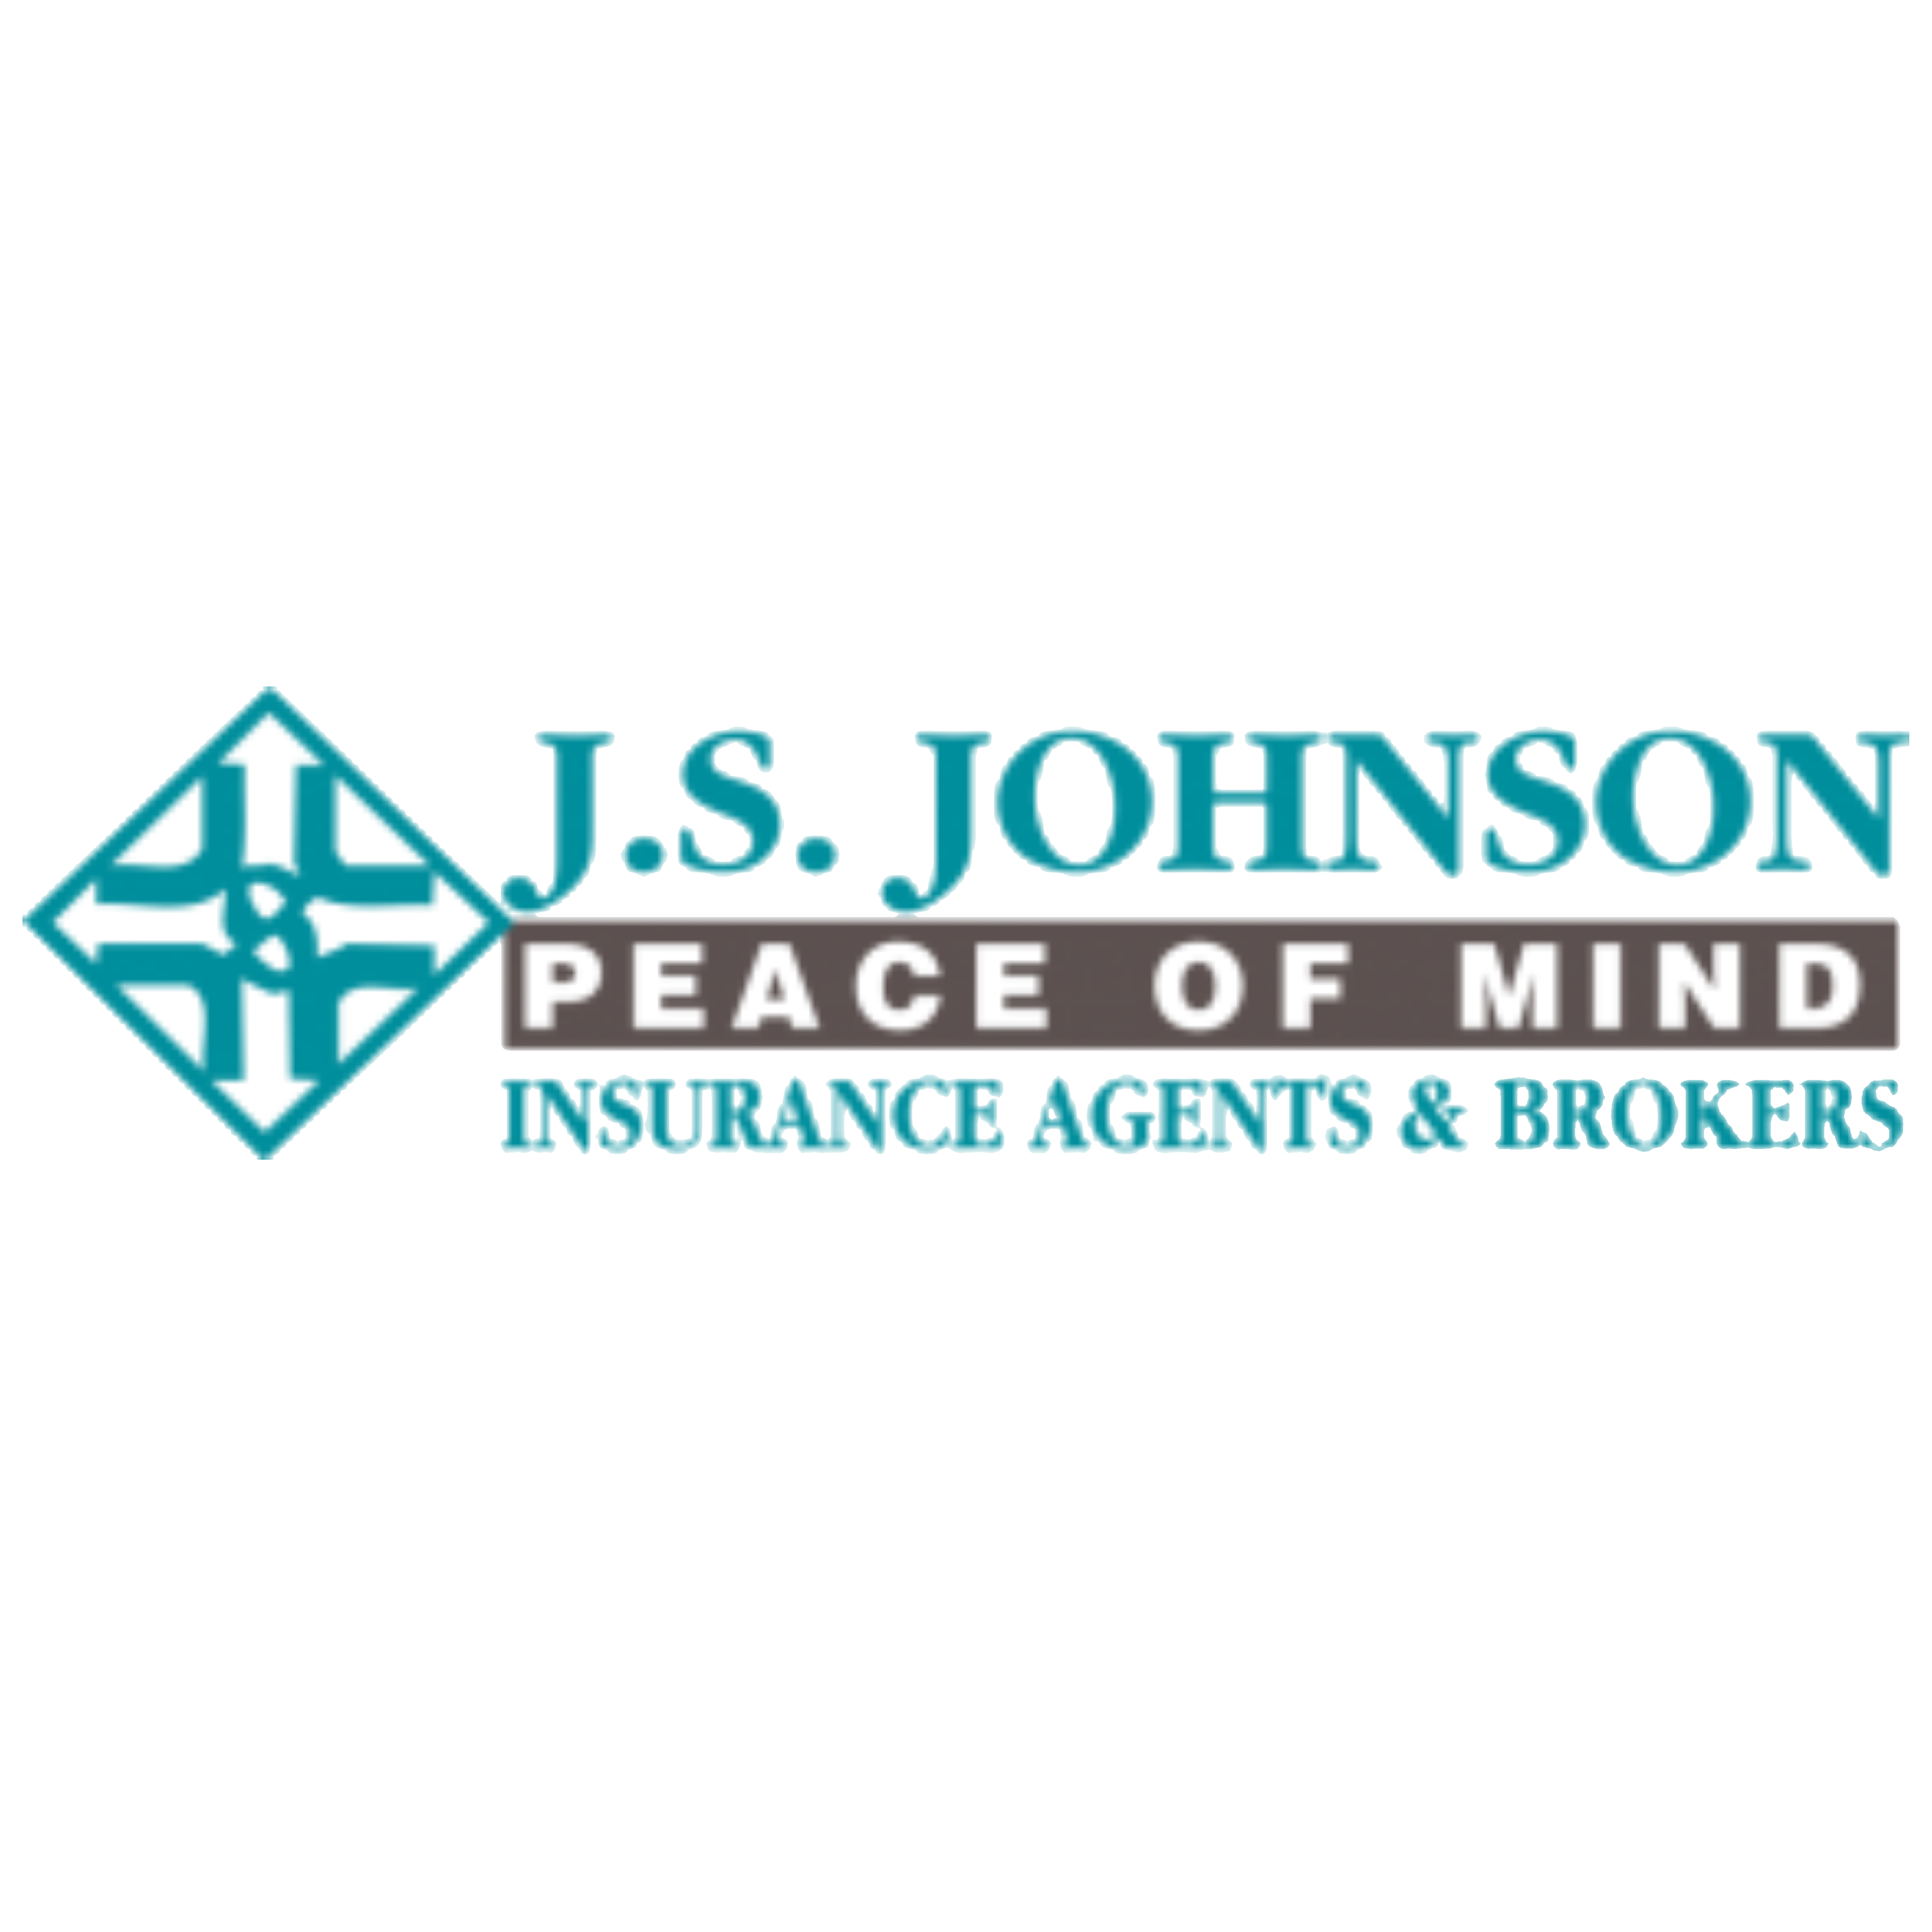 J.S. Johnson Insurance Agents and Brokers